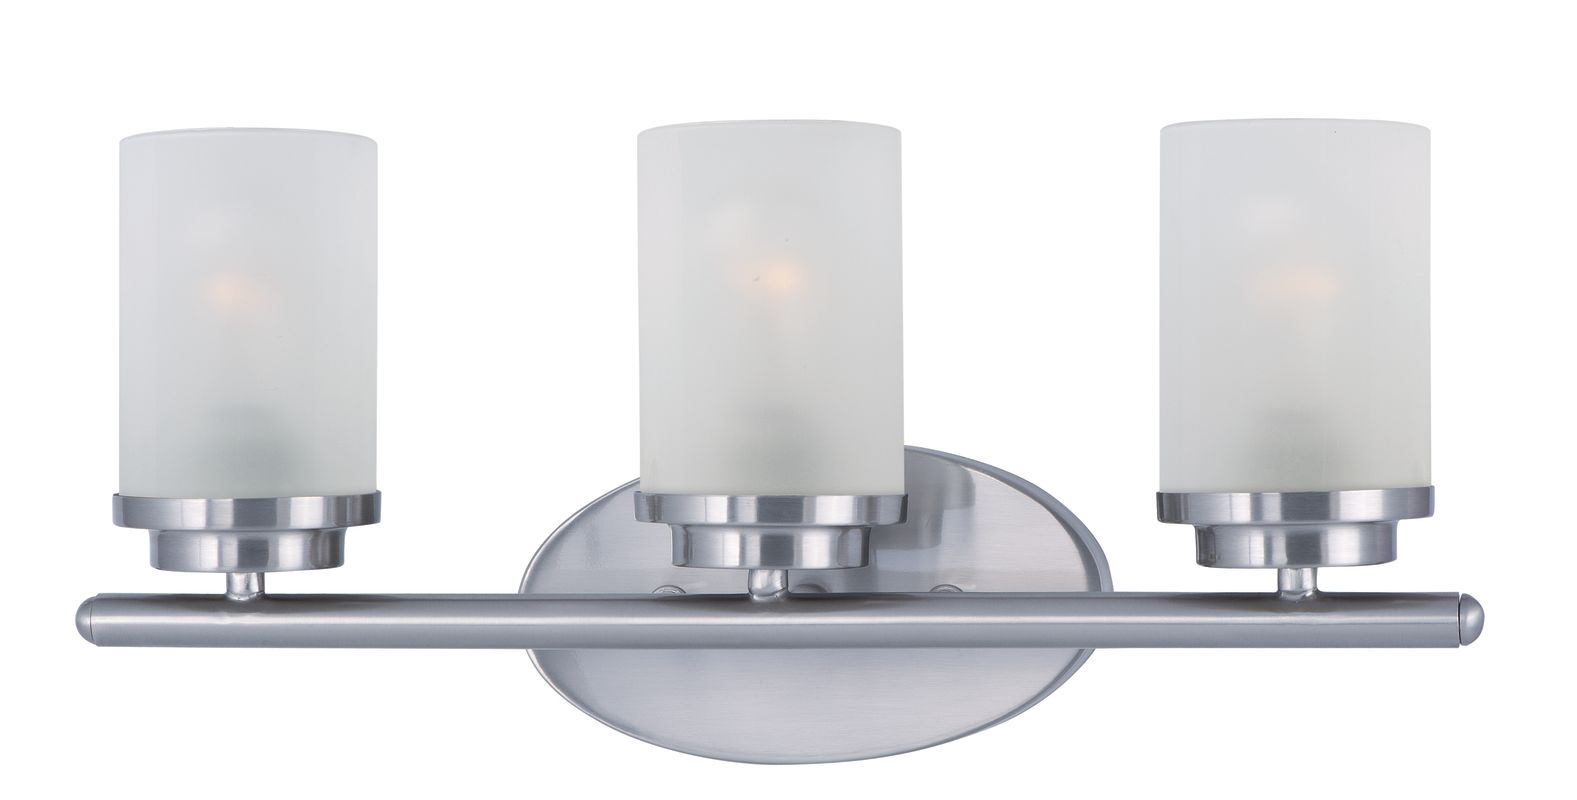 Maxim 10213 3 Light 19.25&quote Wide Bathroom Fixture from the Corona